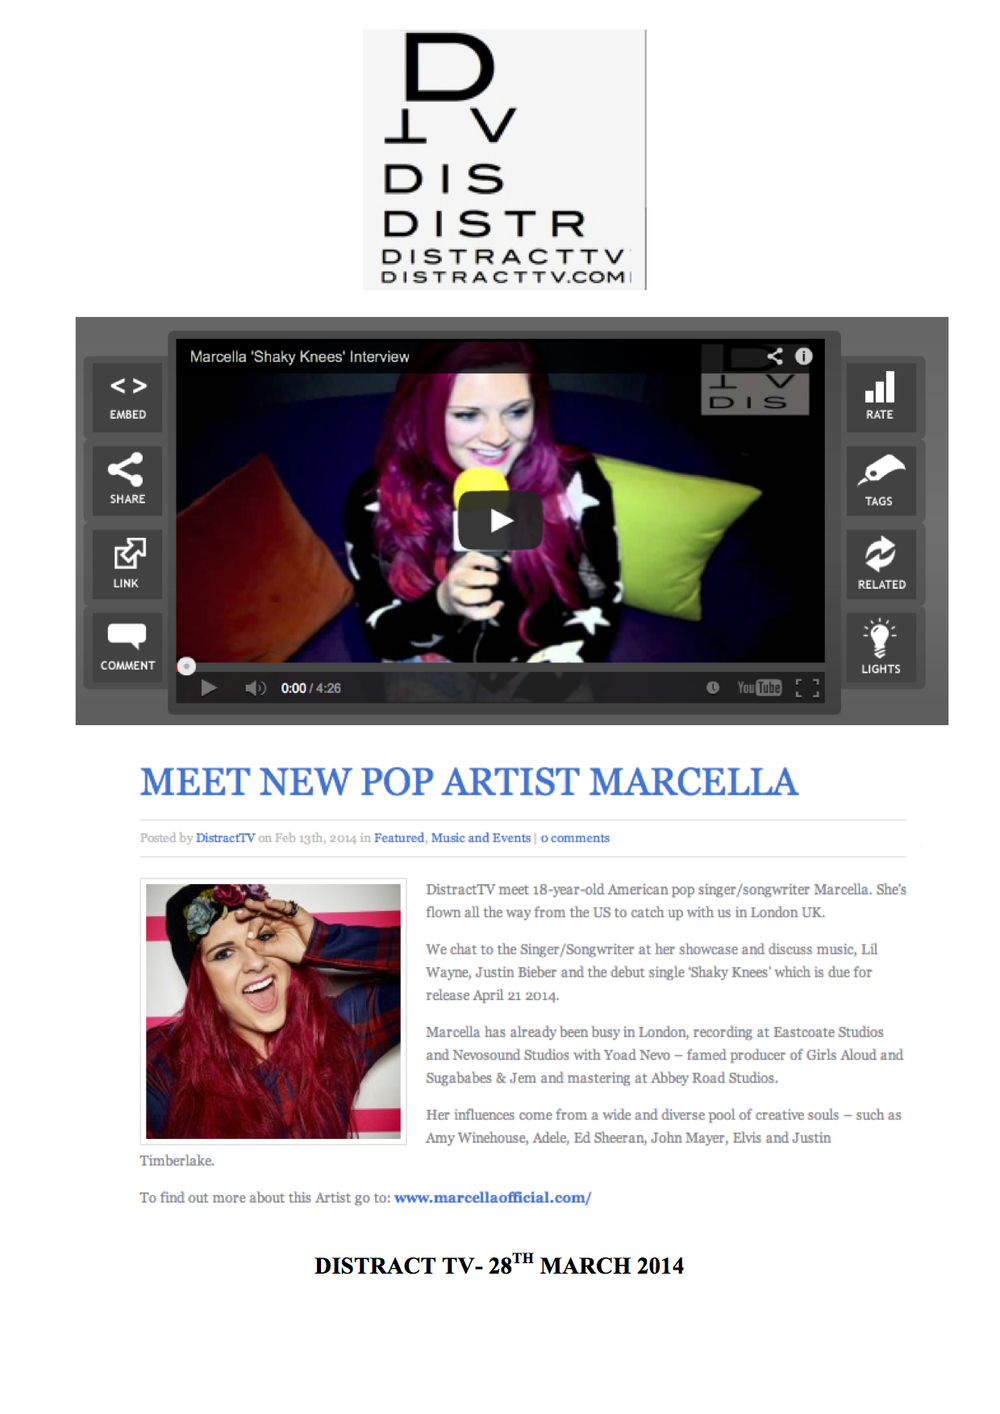 MARCELLA-DISTRACT TV-28TH MARCH 2014.jpg